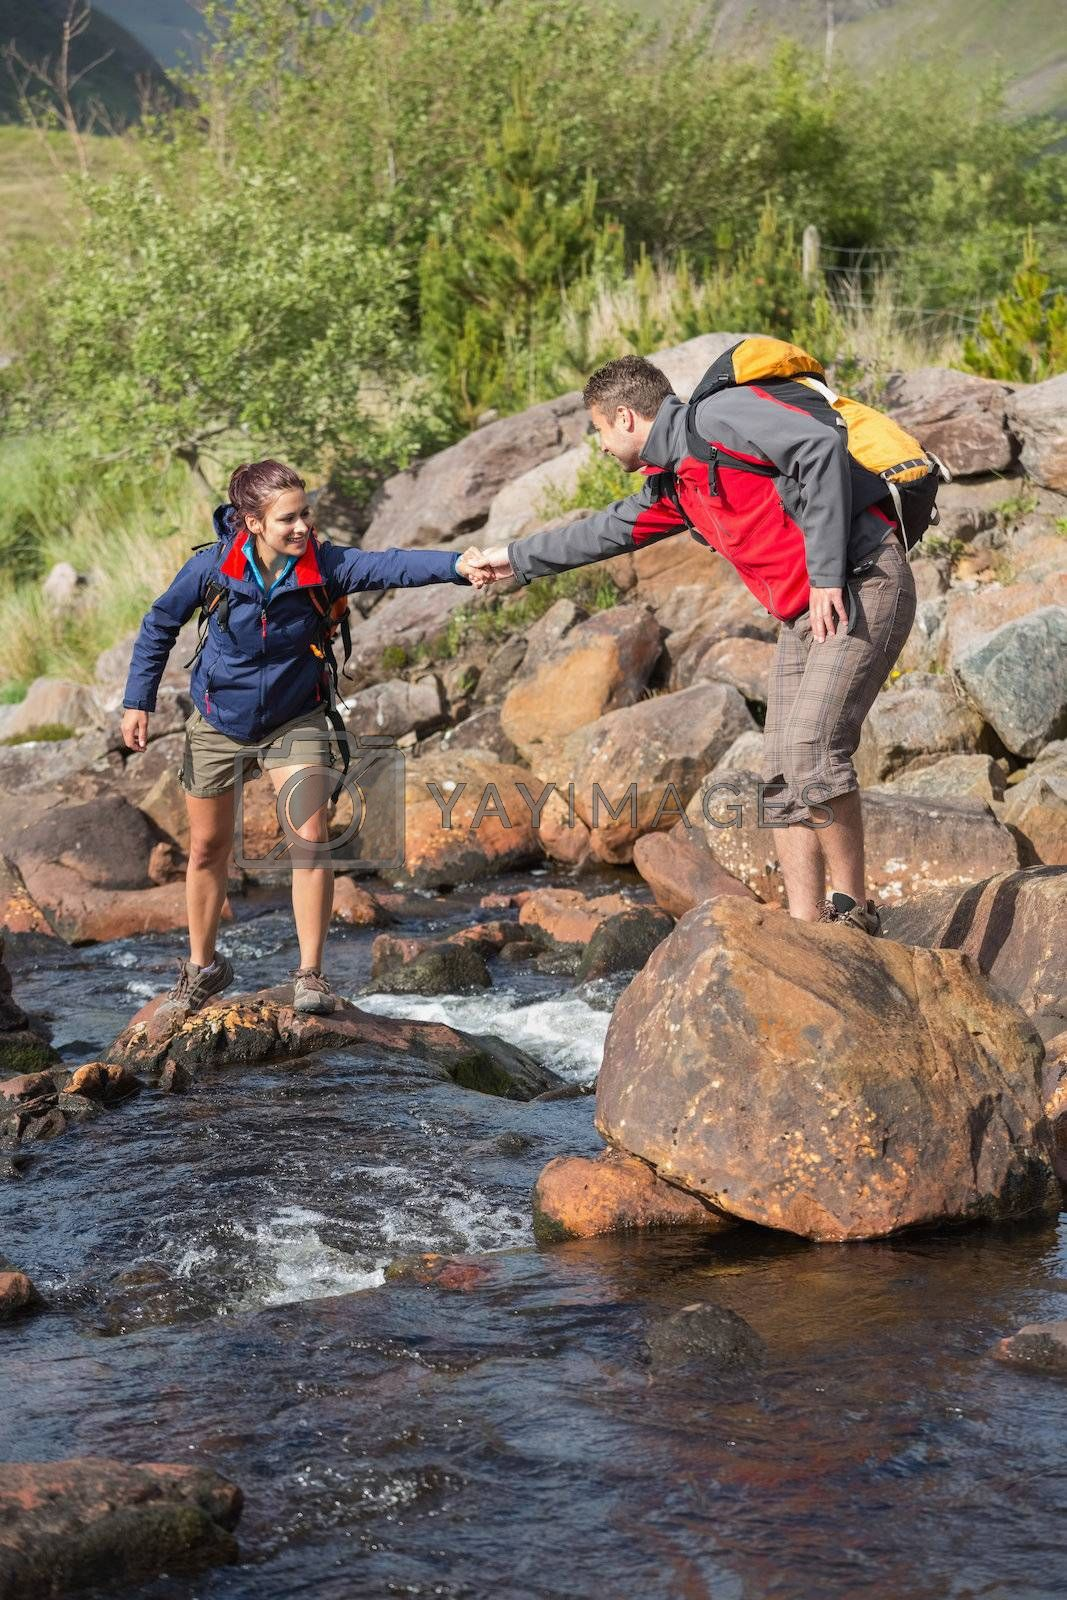 Man helping his girlfriend to cross a river by Wavebreakmedia